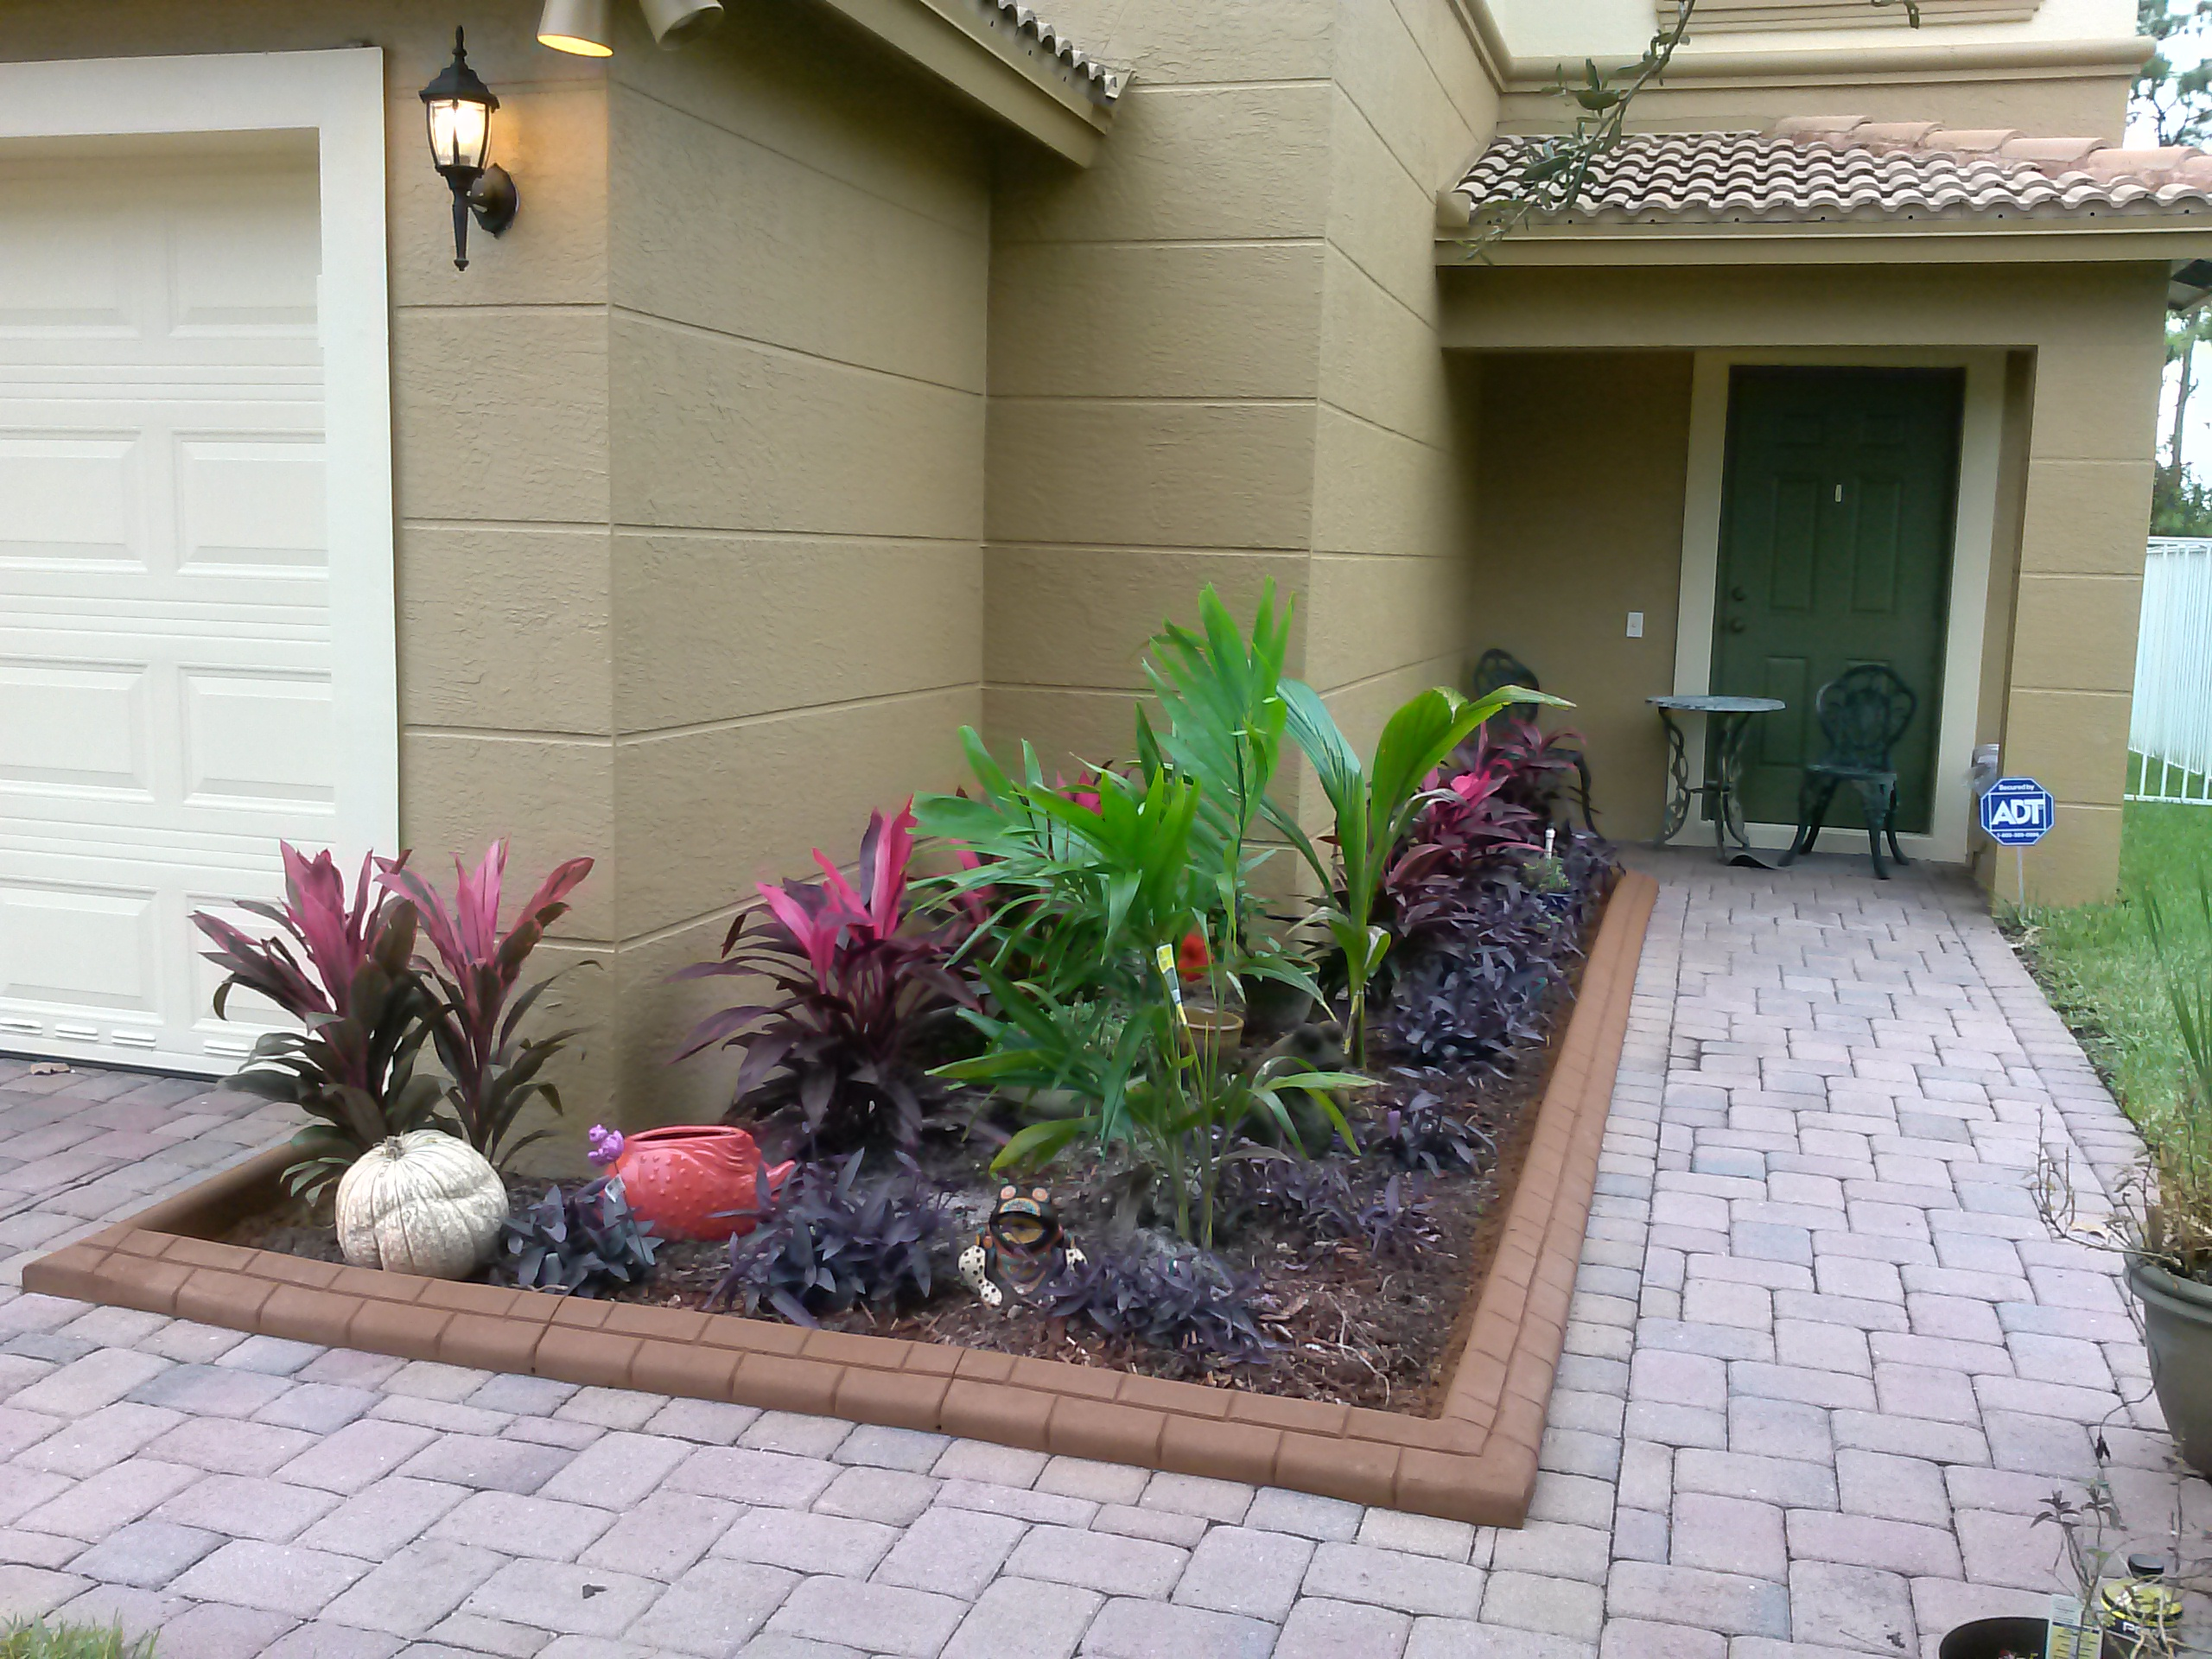 Decorative Stones For Flower Beds Curbs4us Concrete Curbs Residential And Commercial Concrete Works